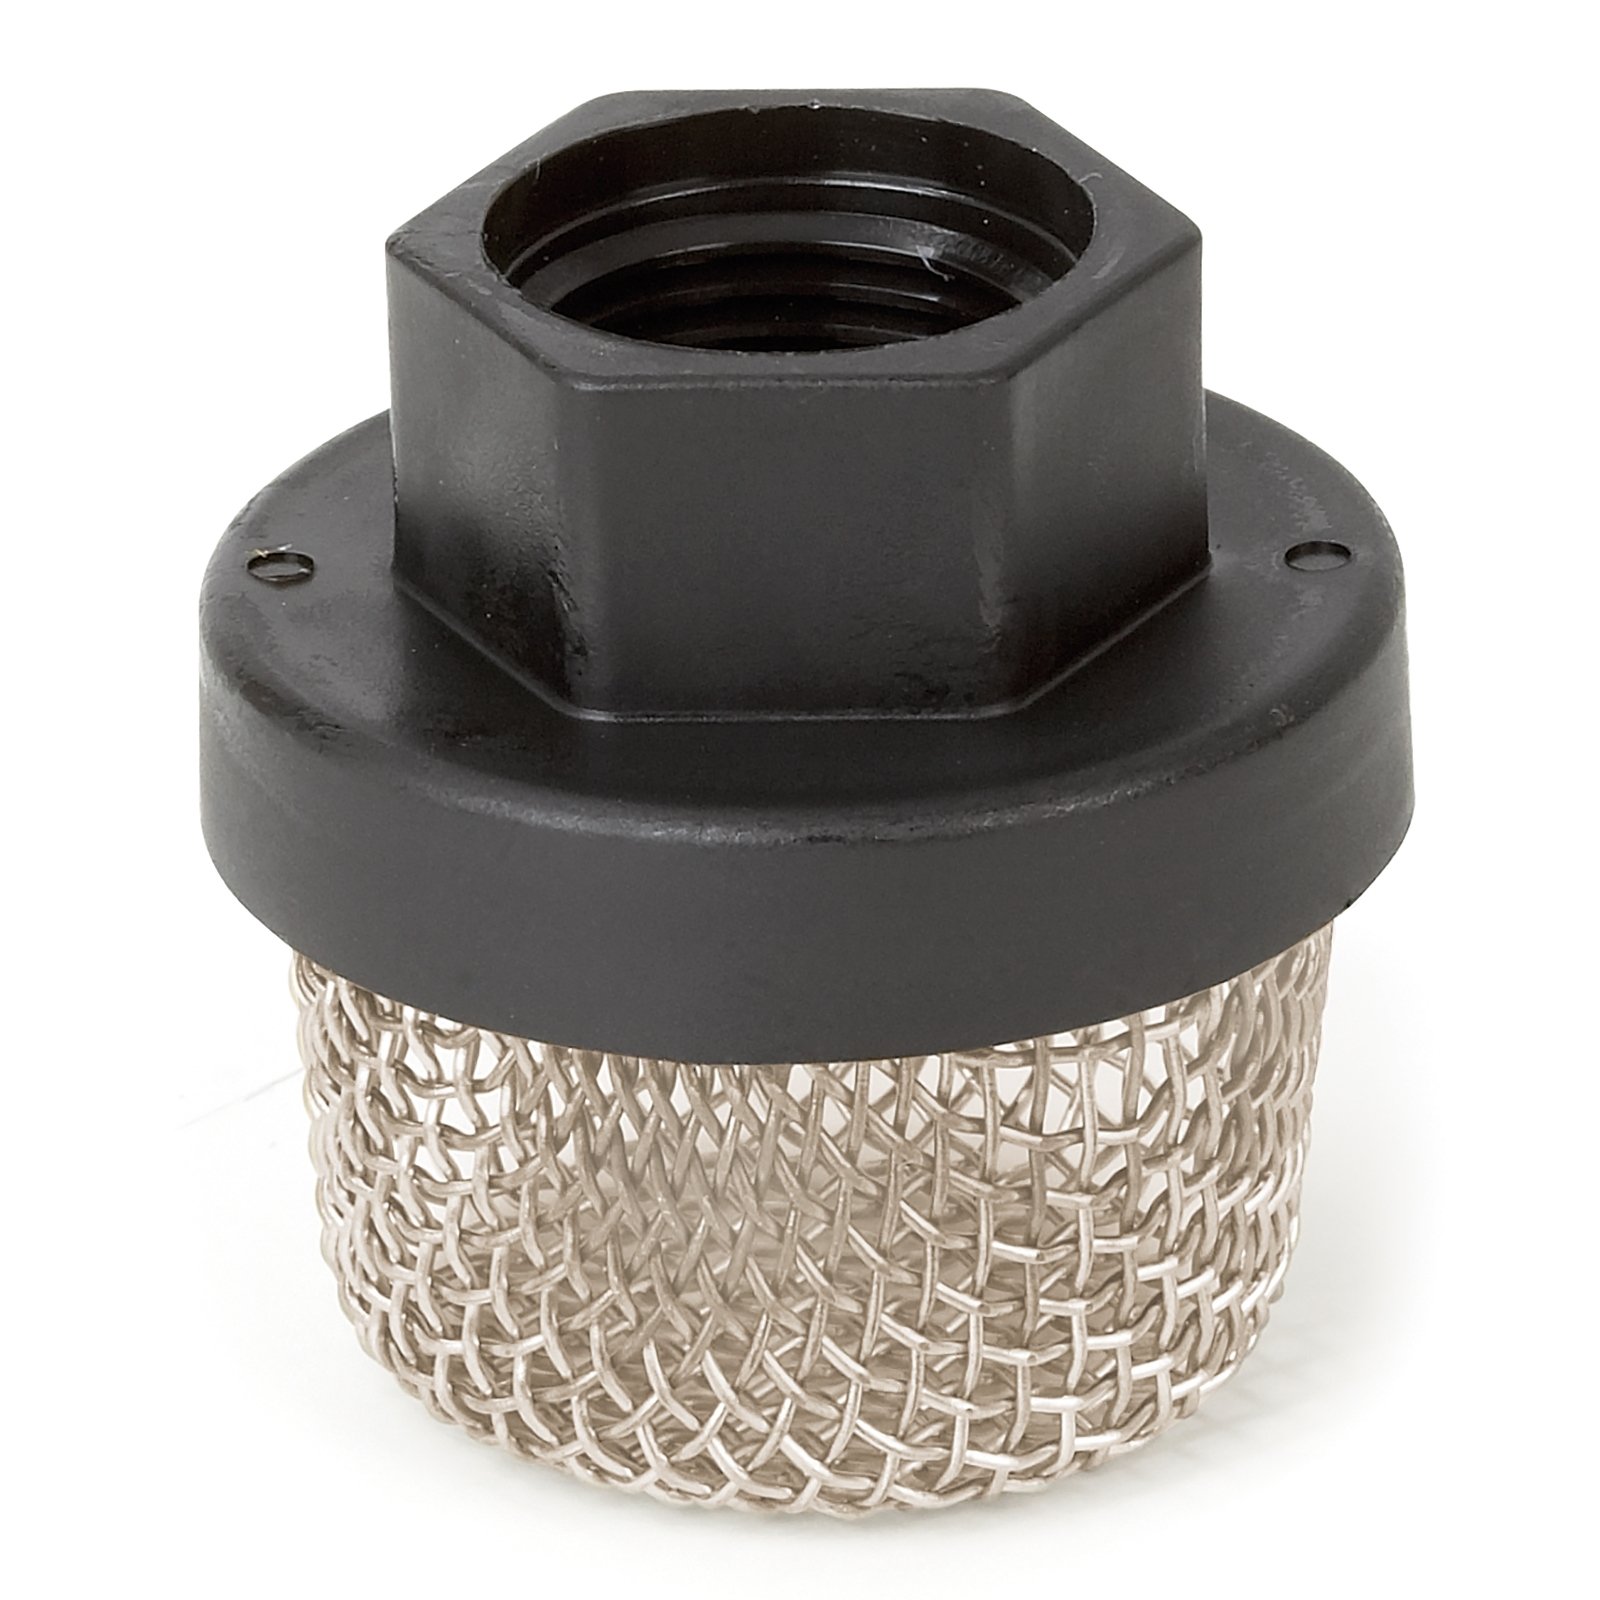 235004_Inlet_Strainer_Main